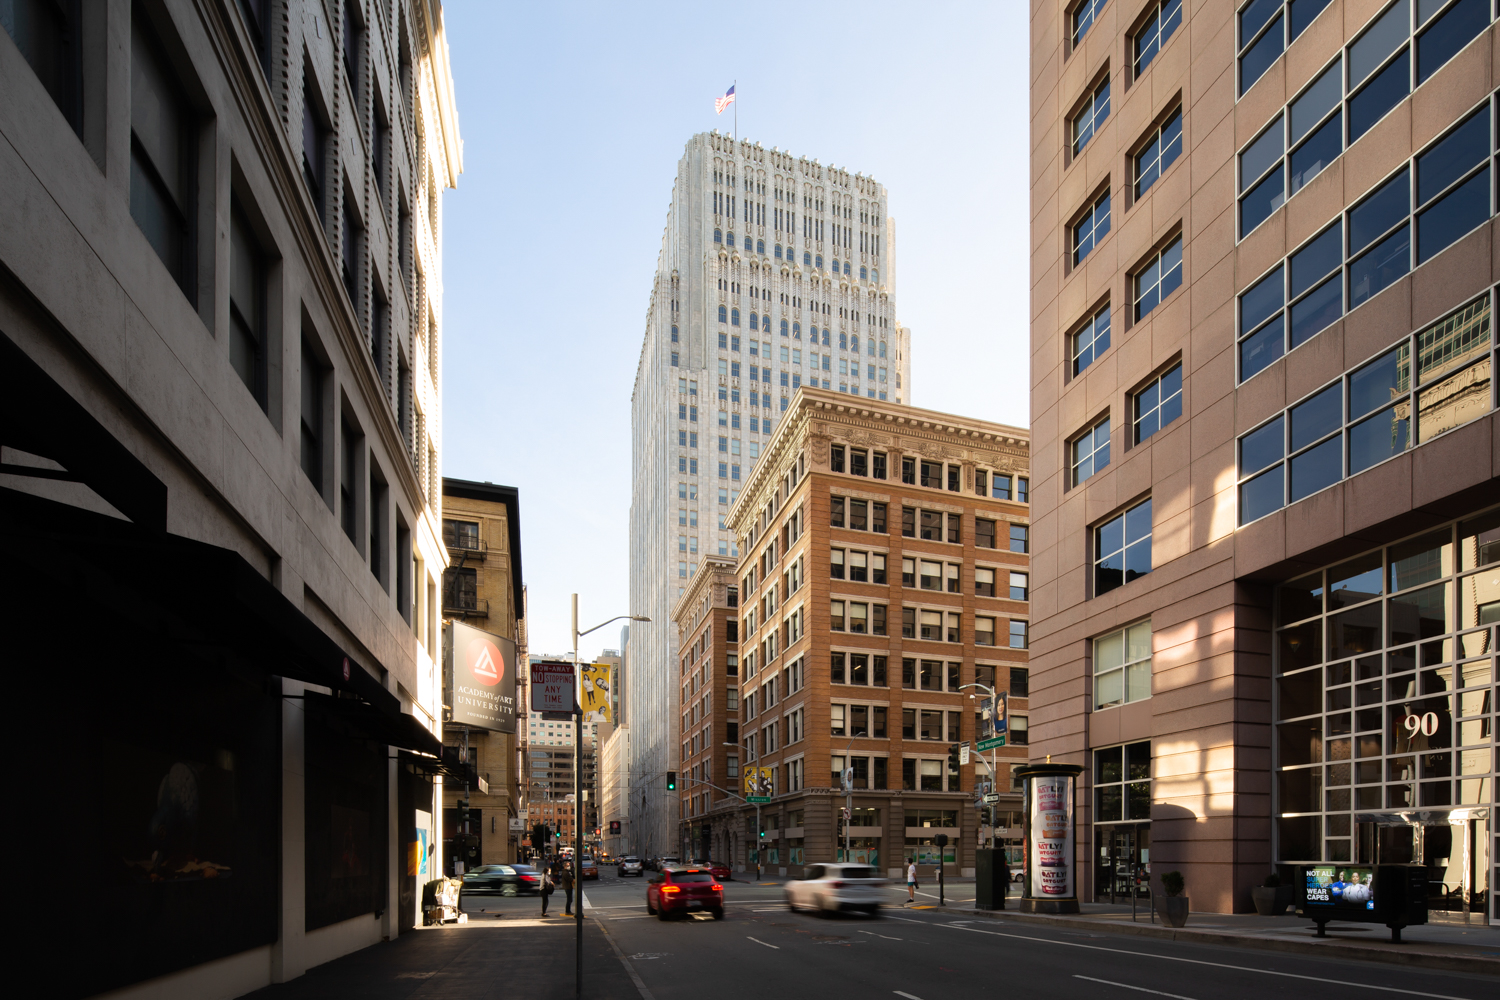 140 New Montgomery Street, image by Andrew Campbell Nelson